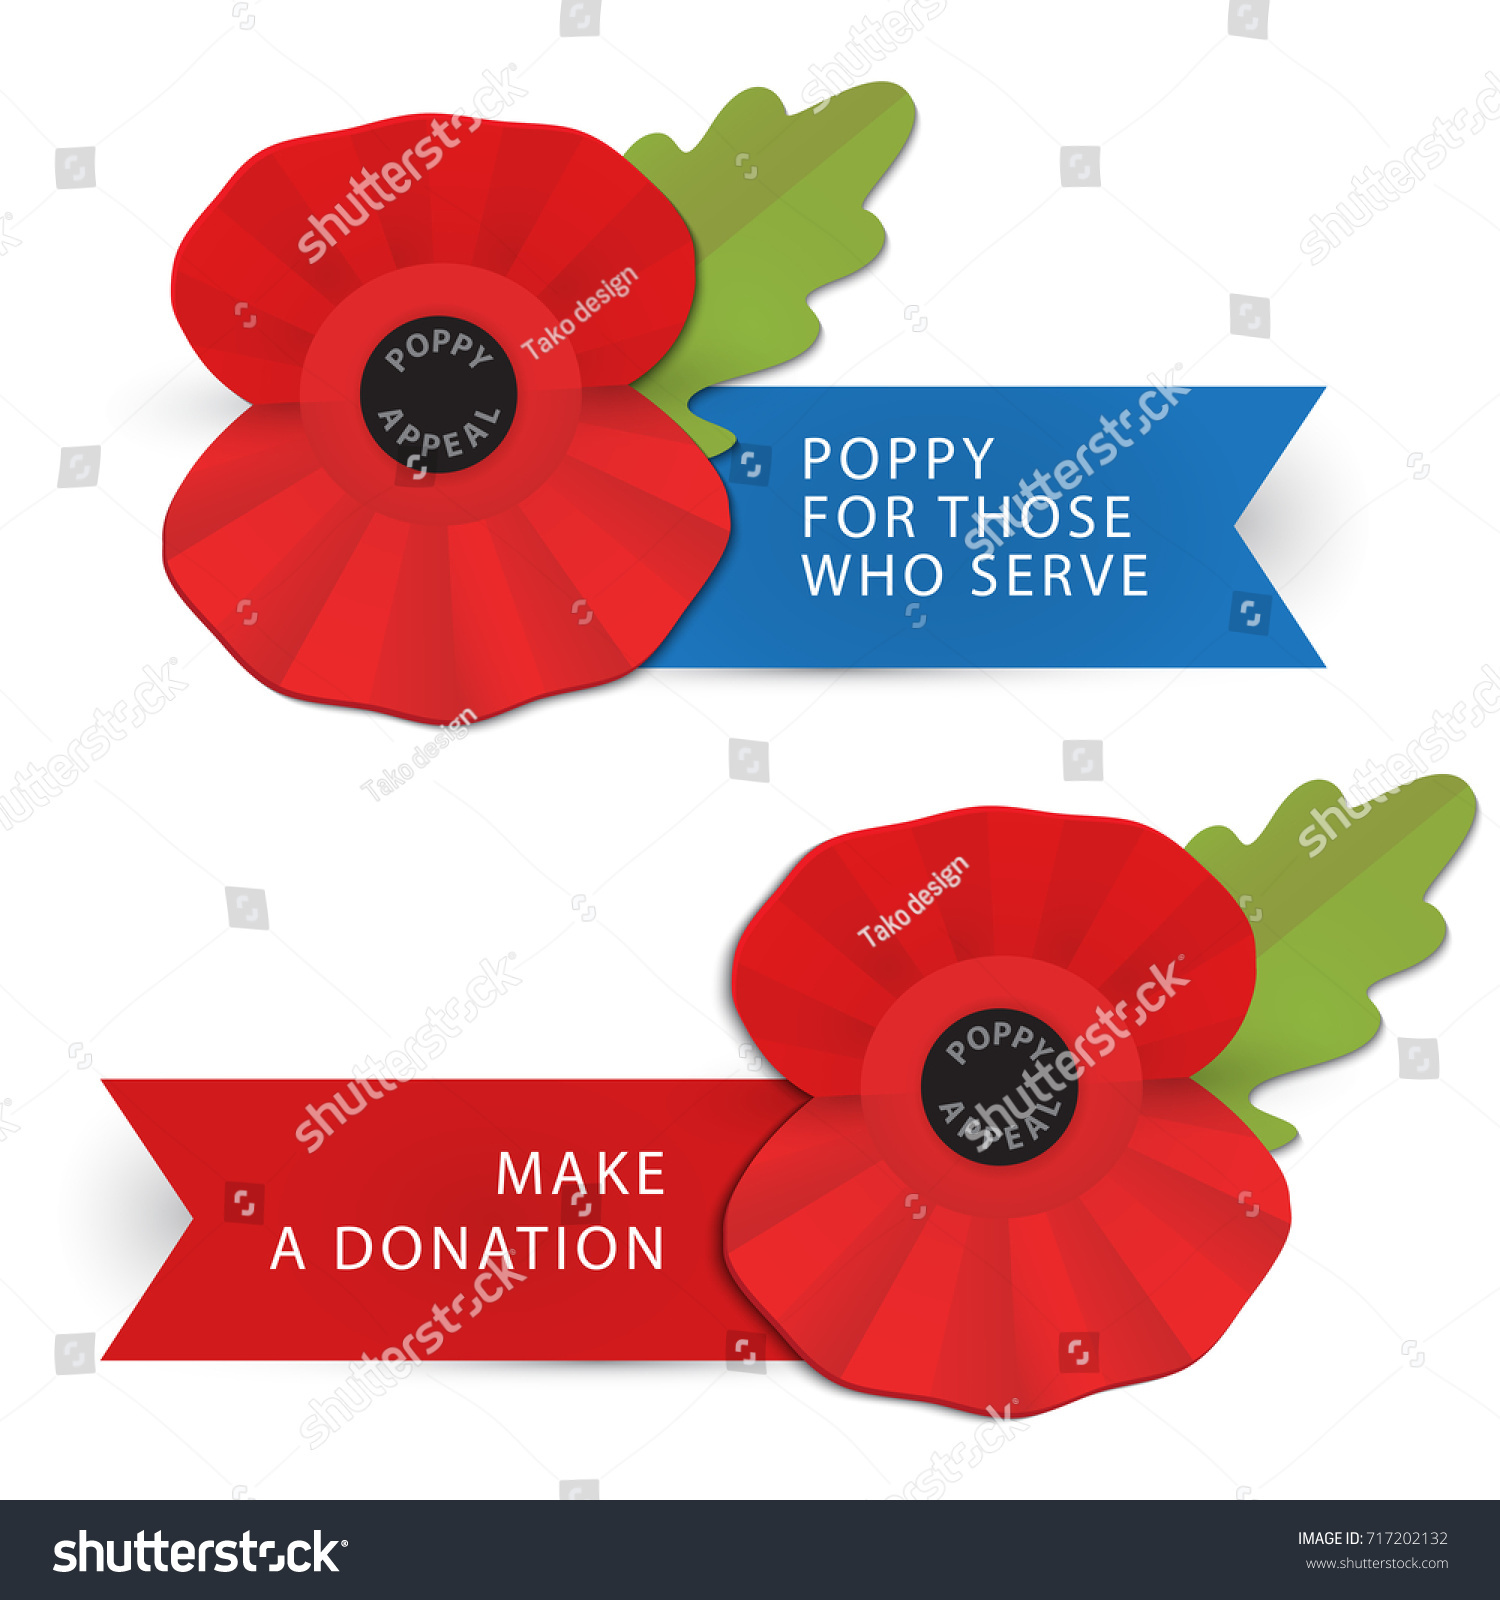 Remembrance Poppy Poppy Appeal Modern Paper Stock Vector Royalty